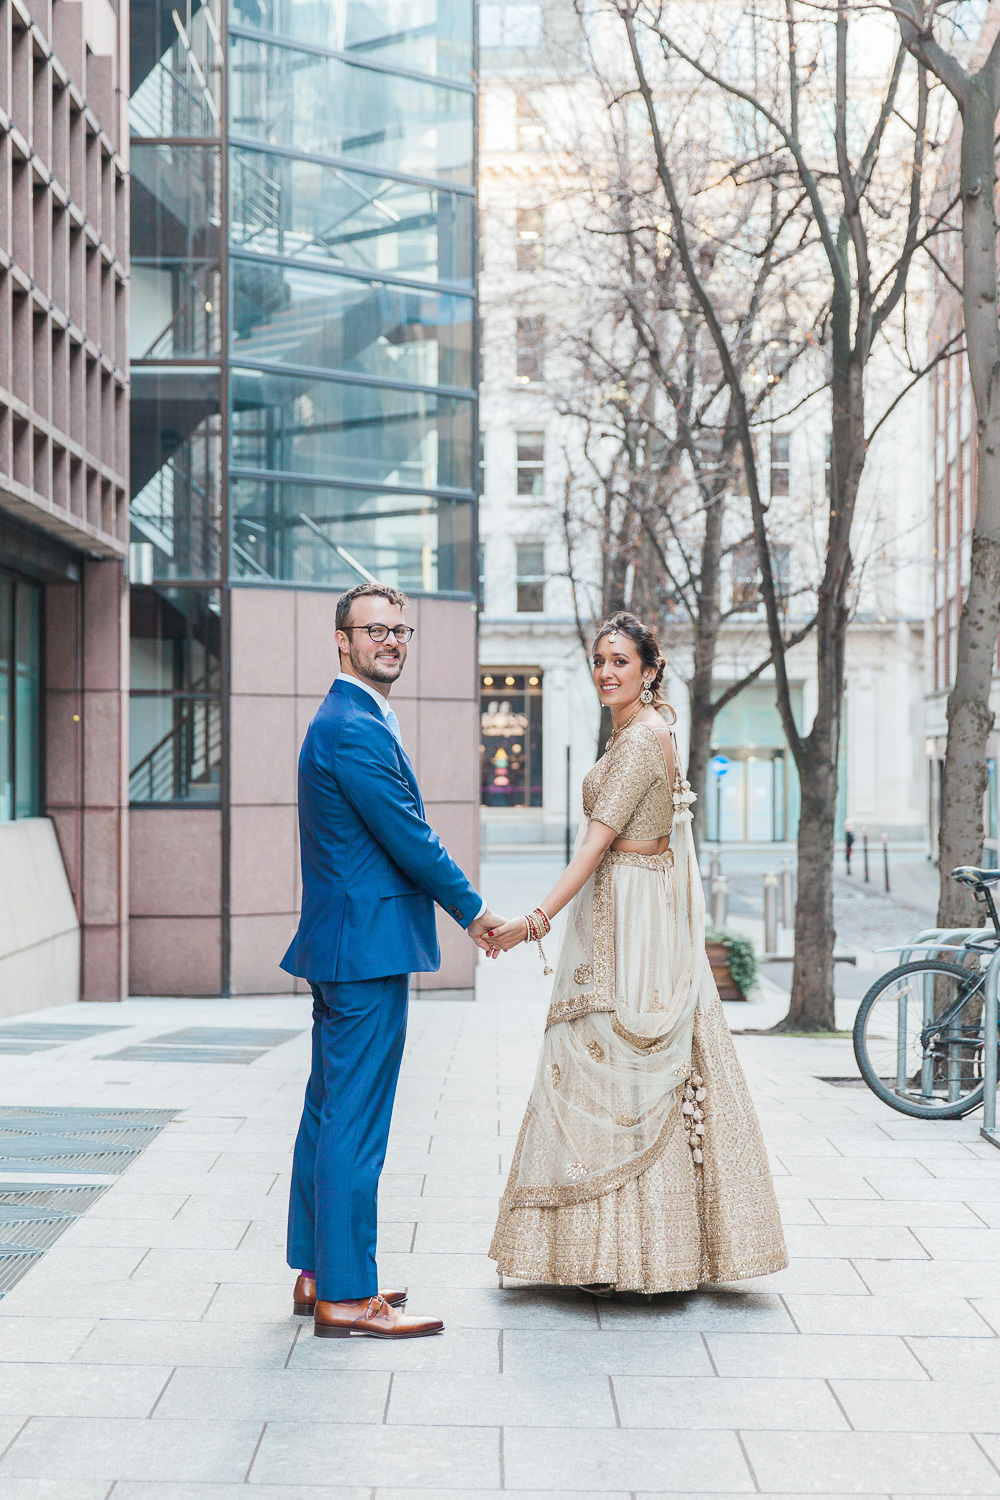 Bride and groom on the streets of London during their multicultural wedding